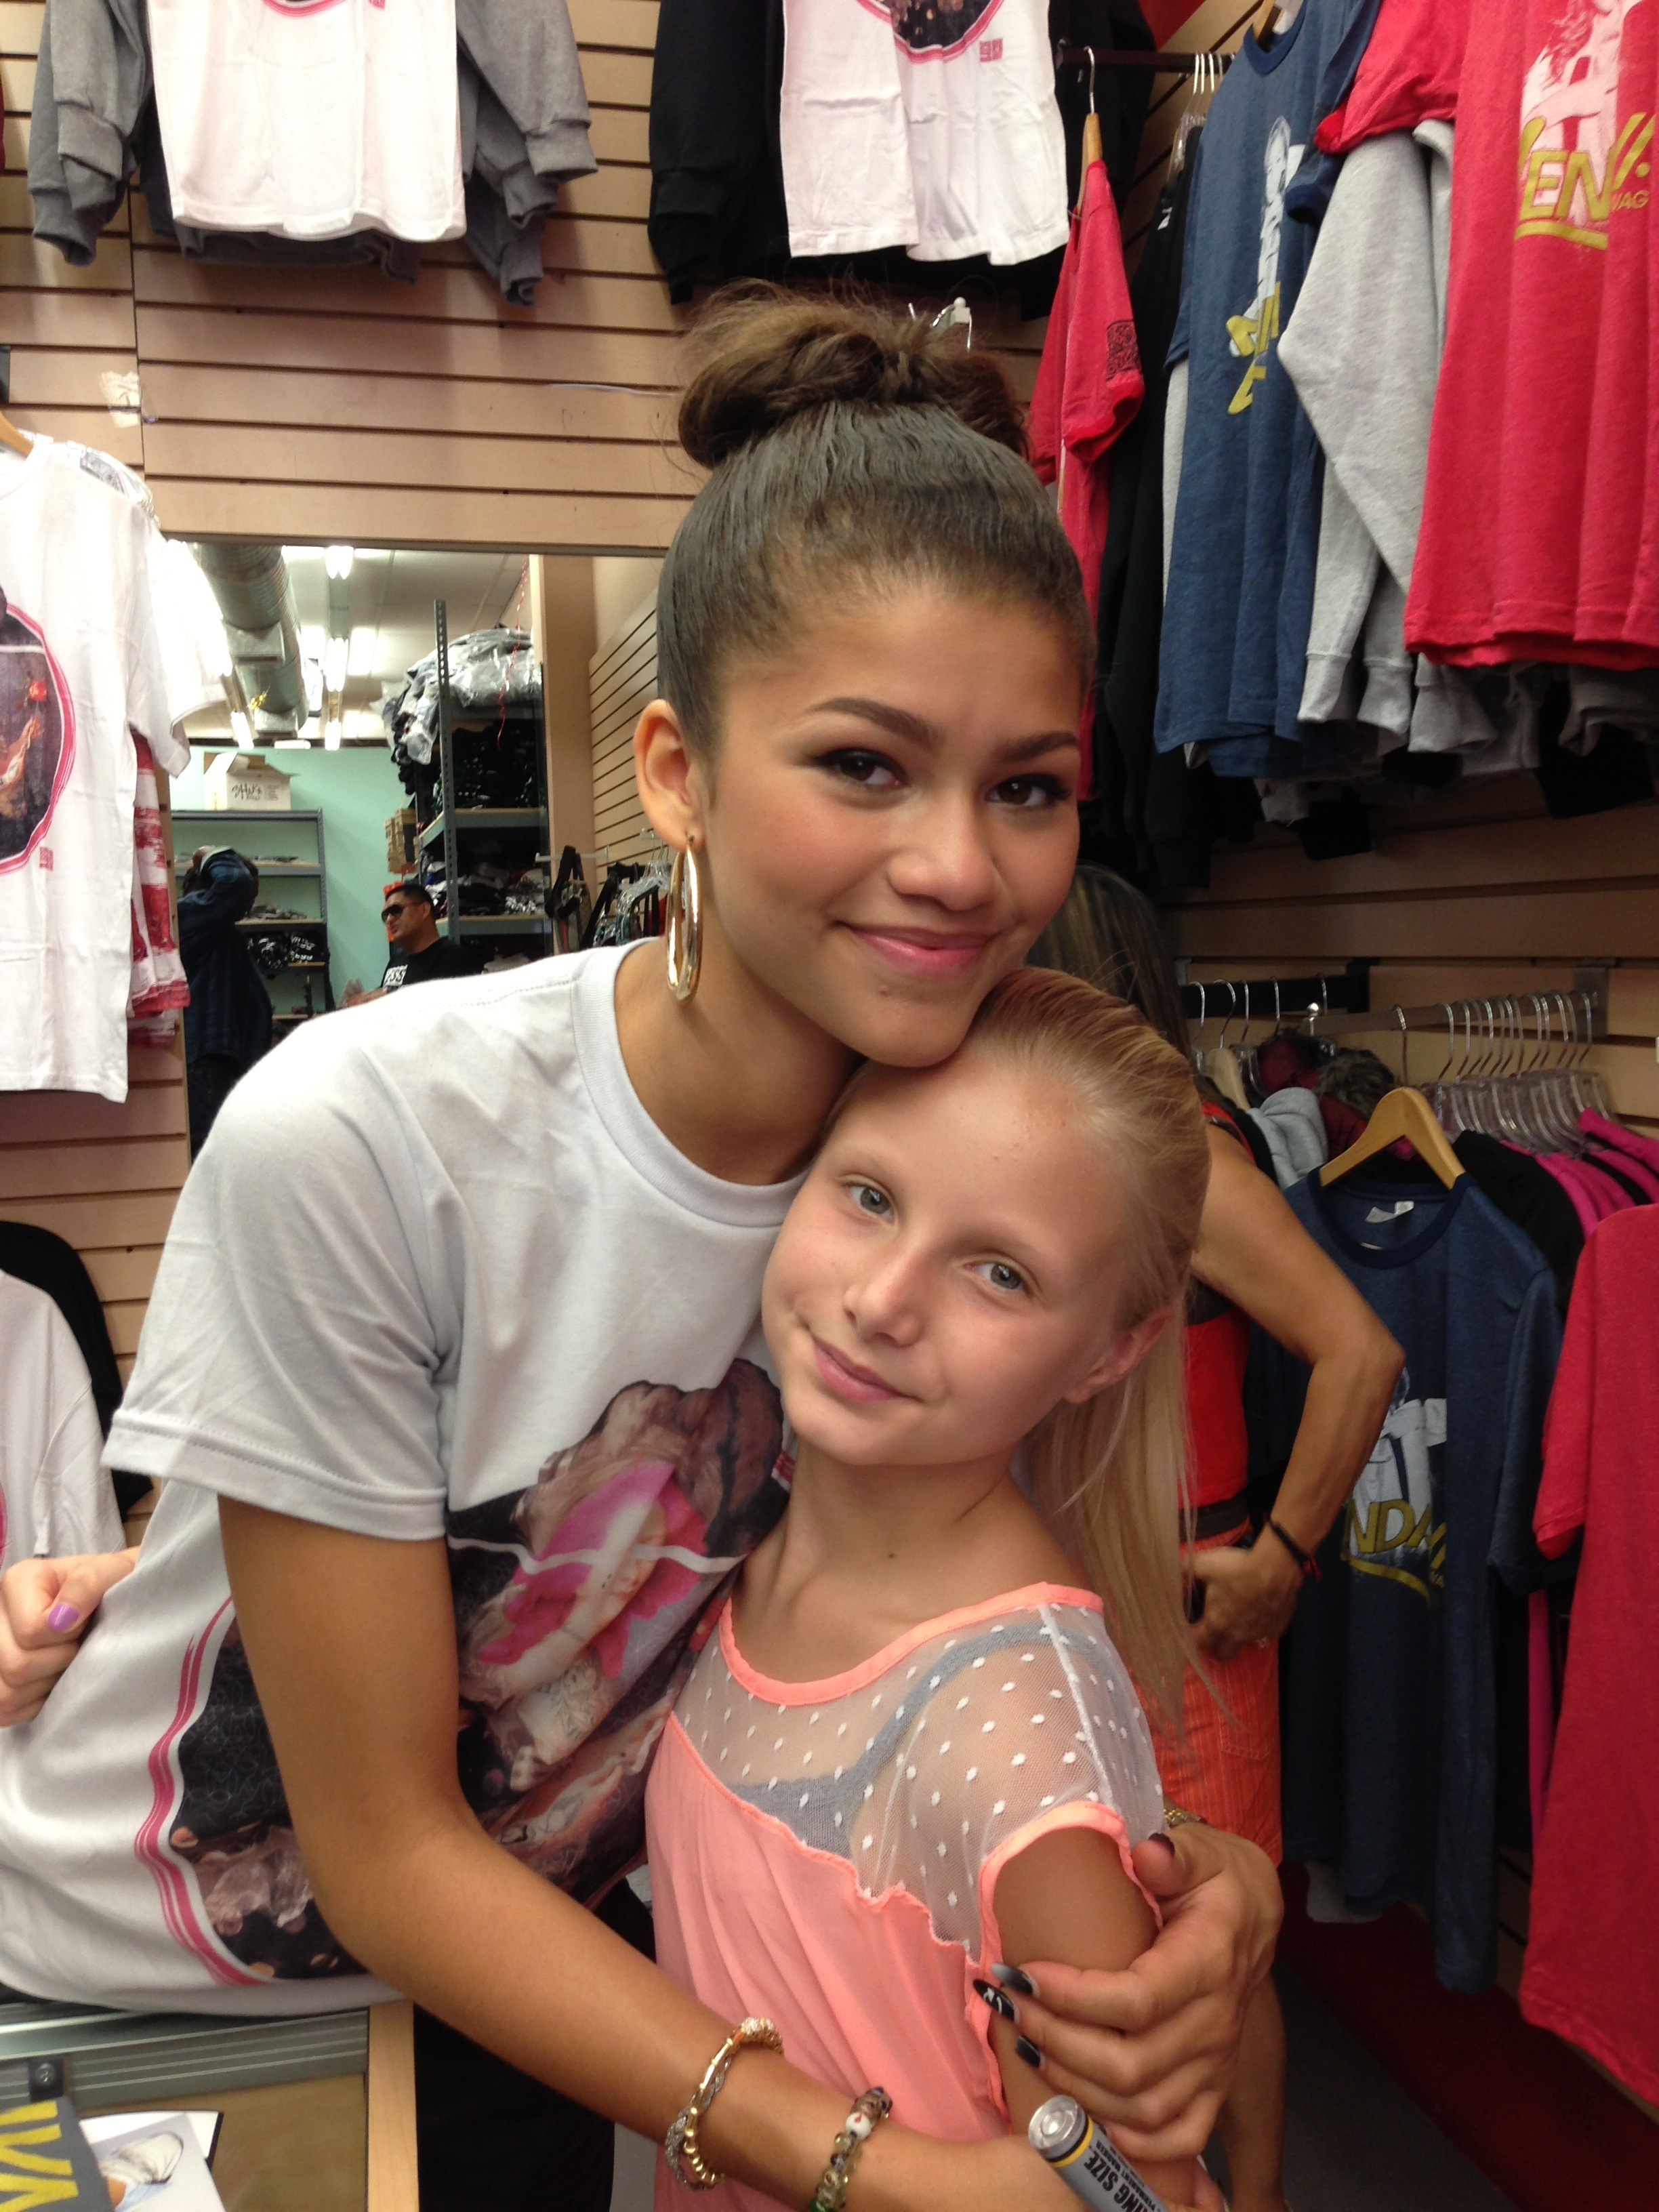 Zendaya meets fans in los angeles june 22 2013 reach for the stars 20130623 124307g m4hsunfo